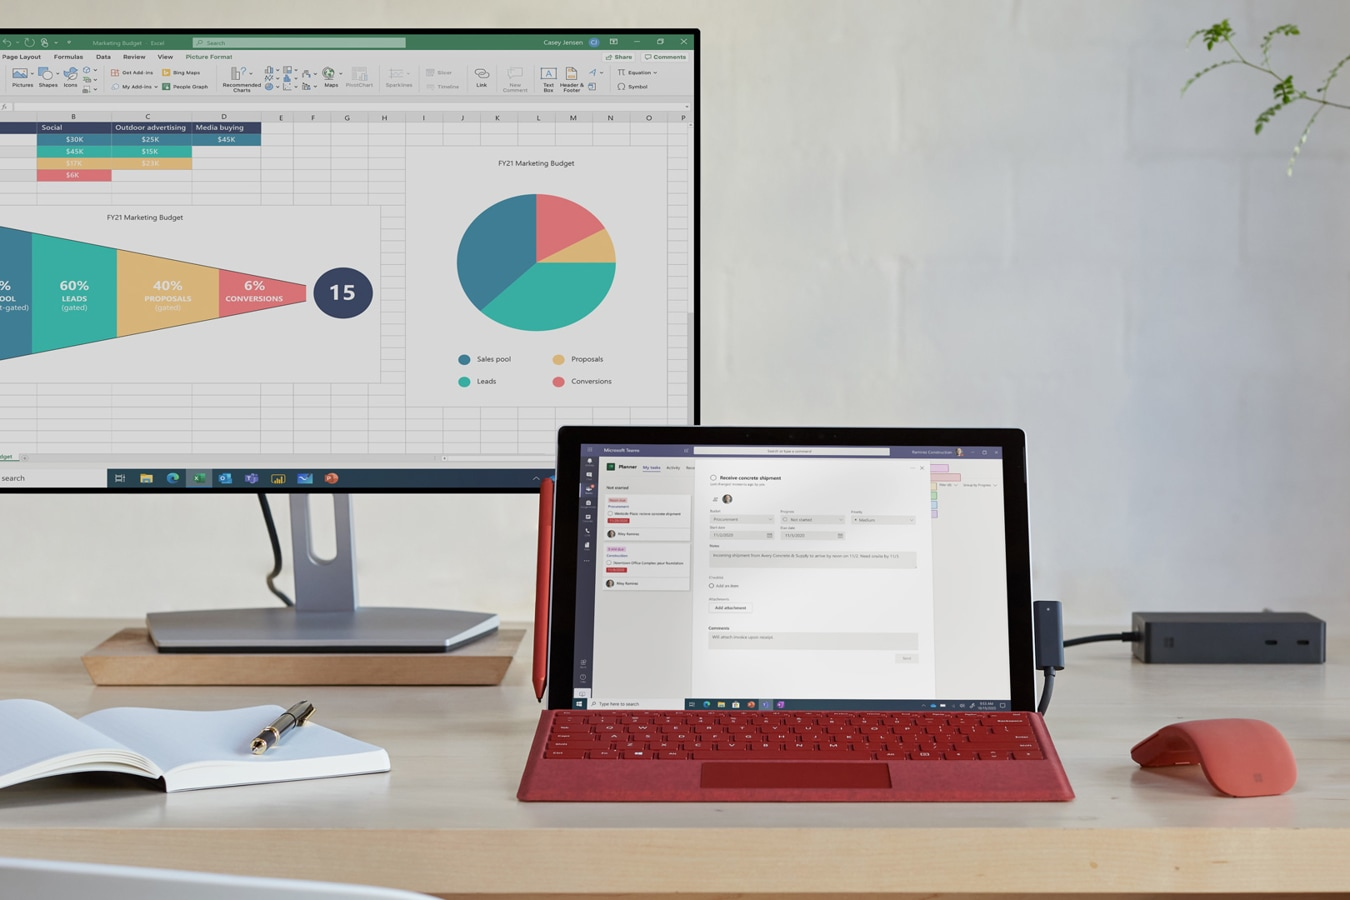 Surface Pro 7+‎ is shown on a home office desk while connected to an external monitor using multiple ports